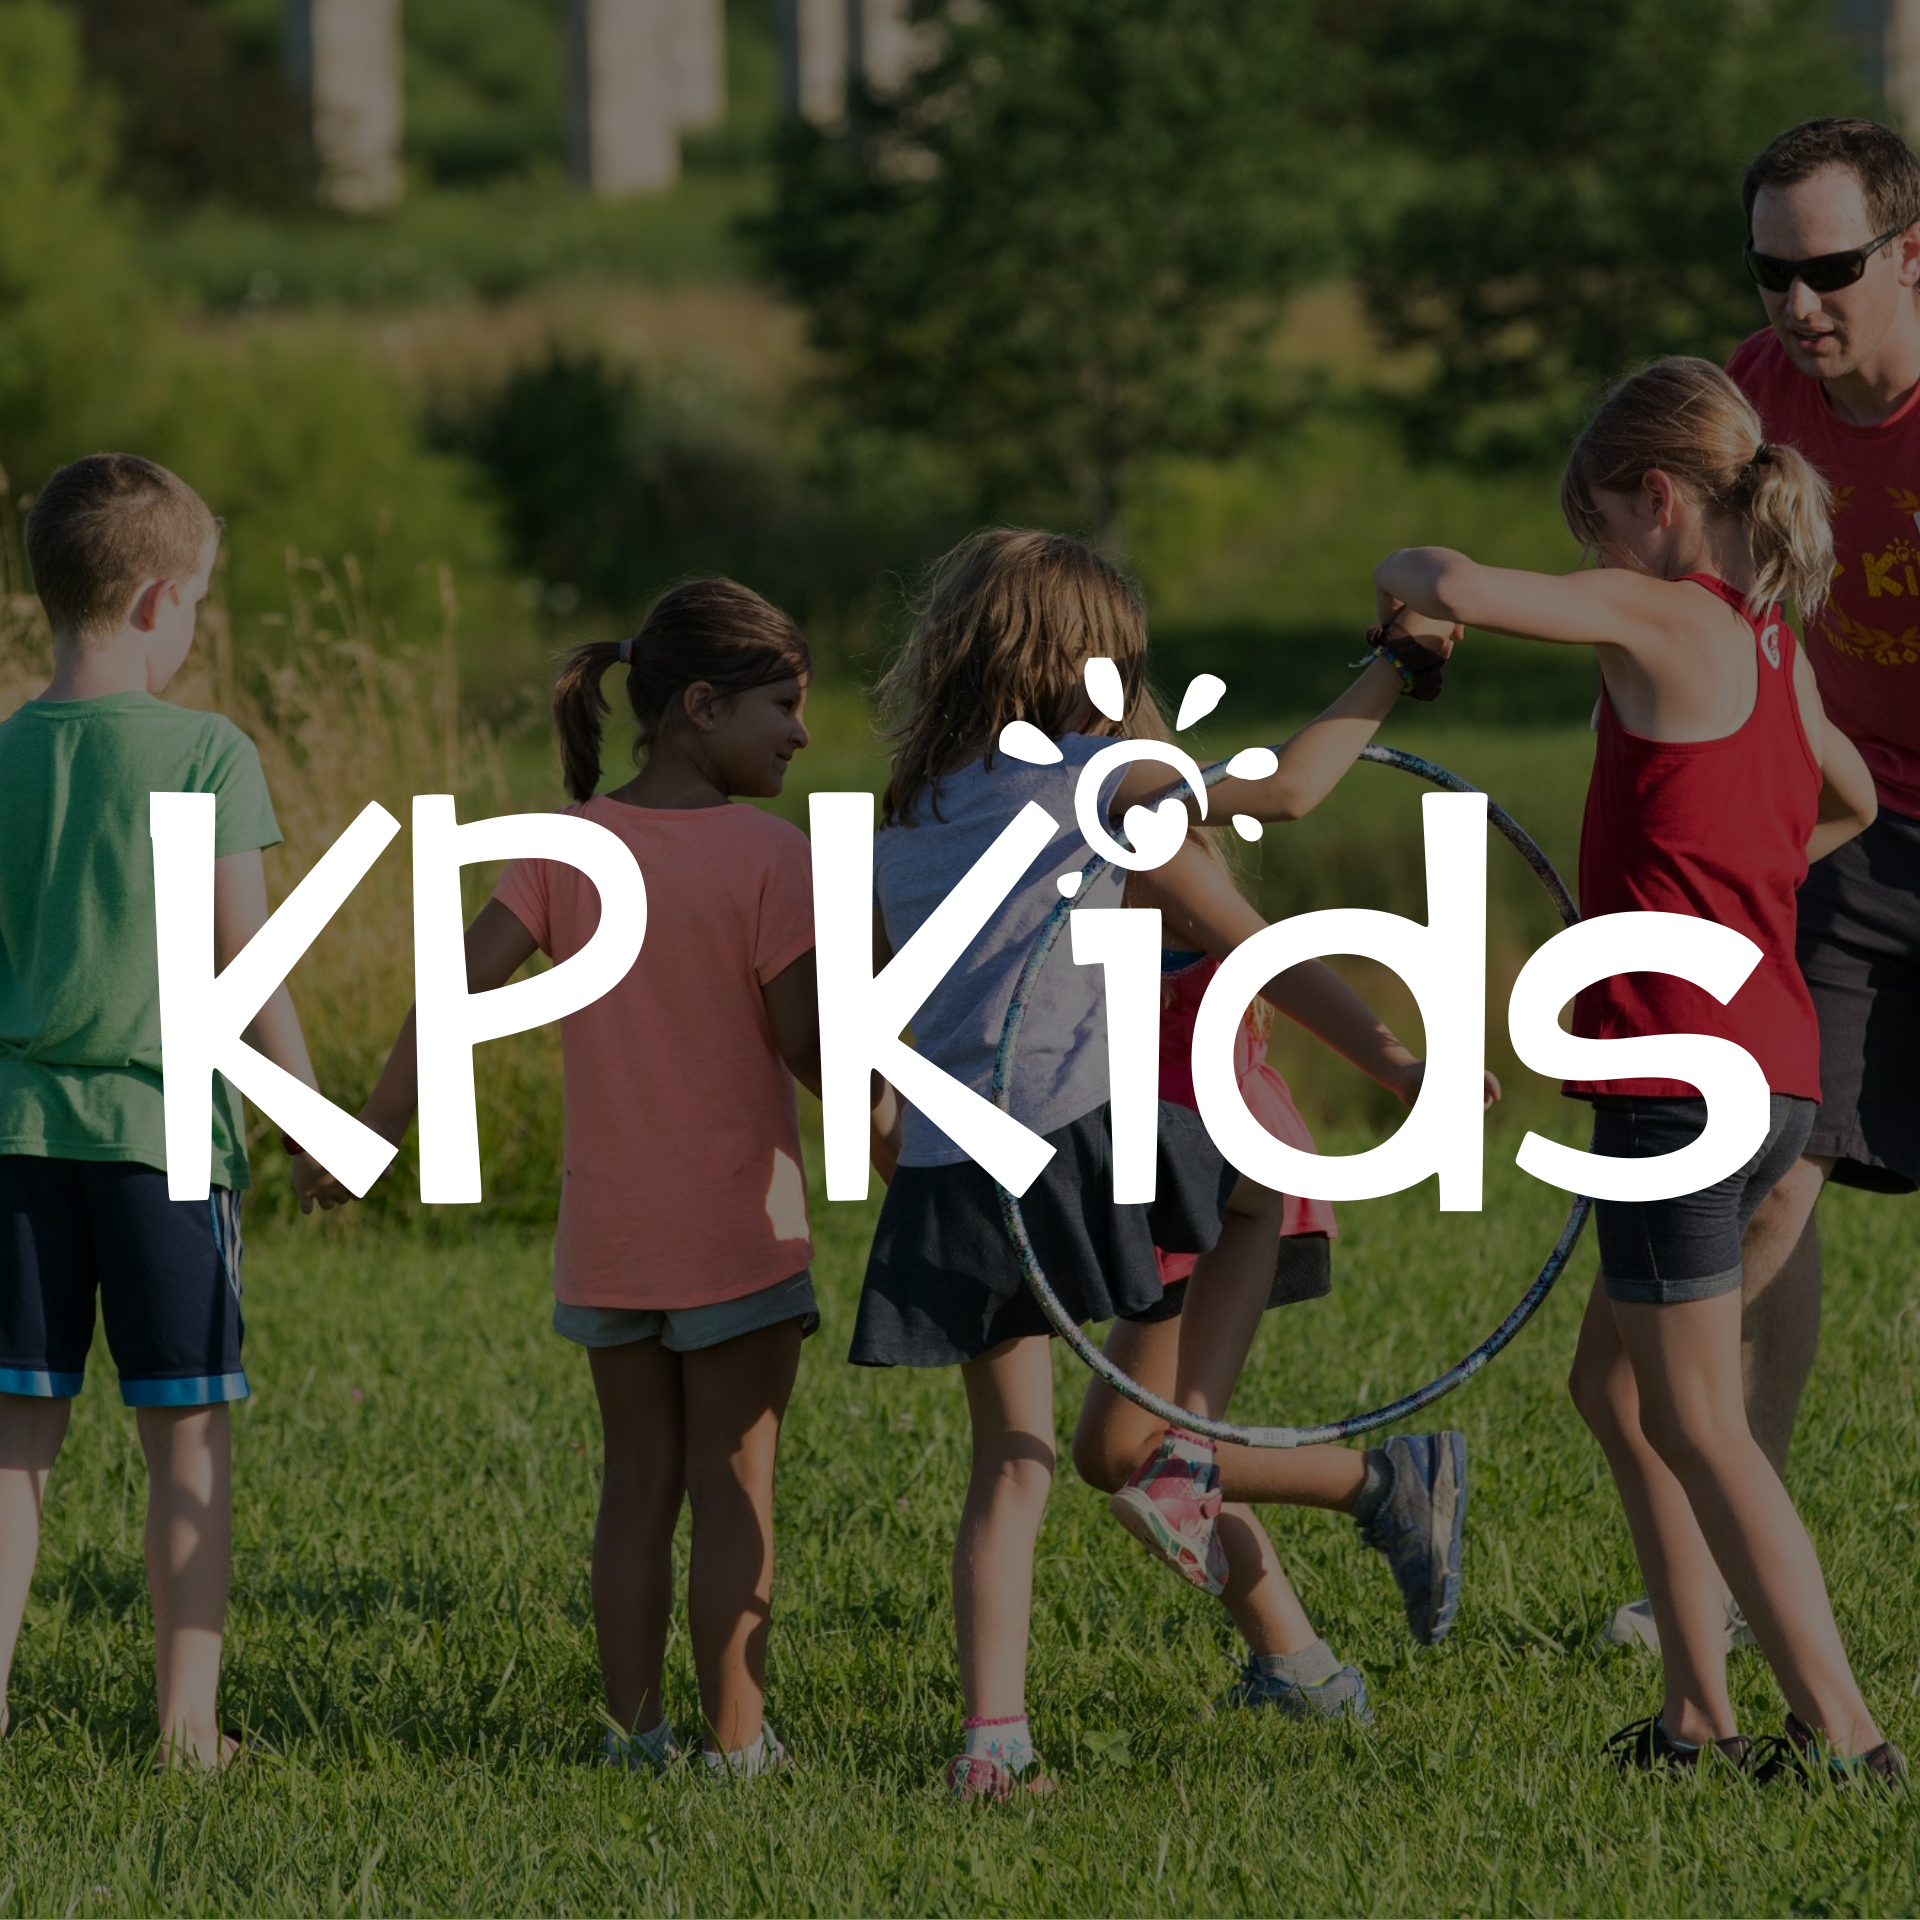 Kindergarten – 3rd Grade - KP Kids provides students in grades Kindergarten – 3rd with engaging ways to experience what's so special about knowing and trusting Jesus. Kids get excited each week to come to class with their peers and have fun growing their faith!